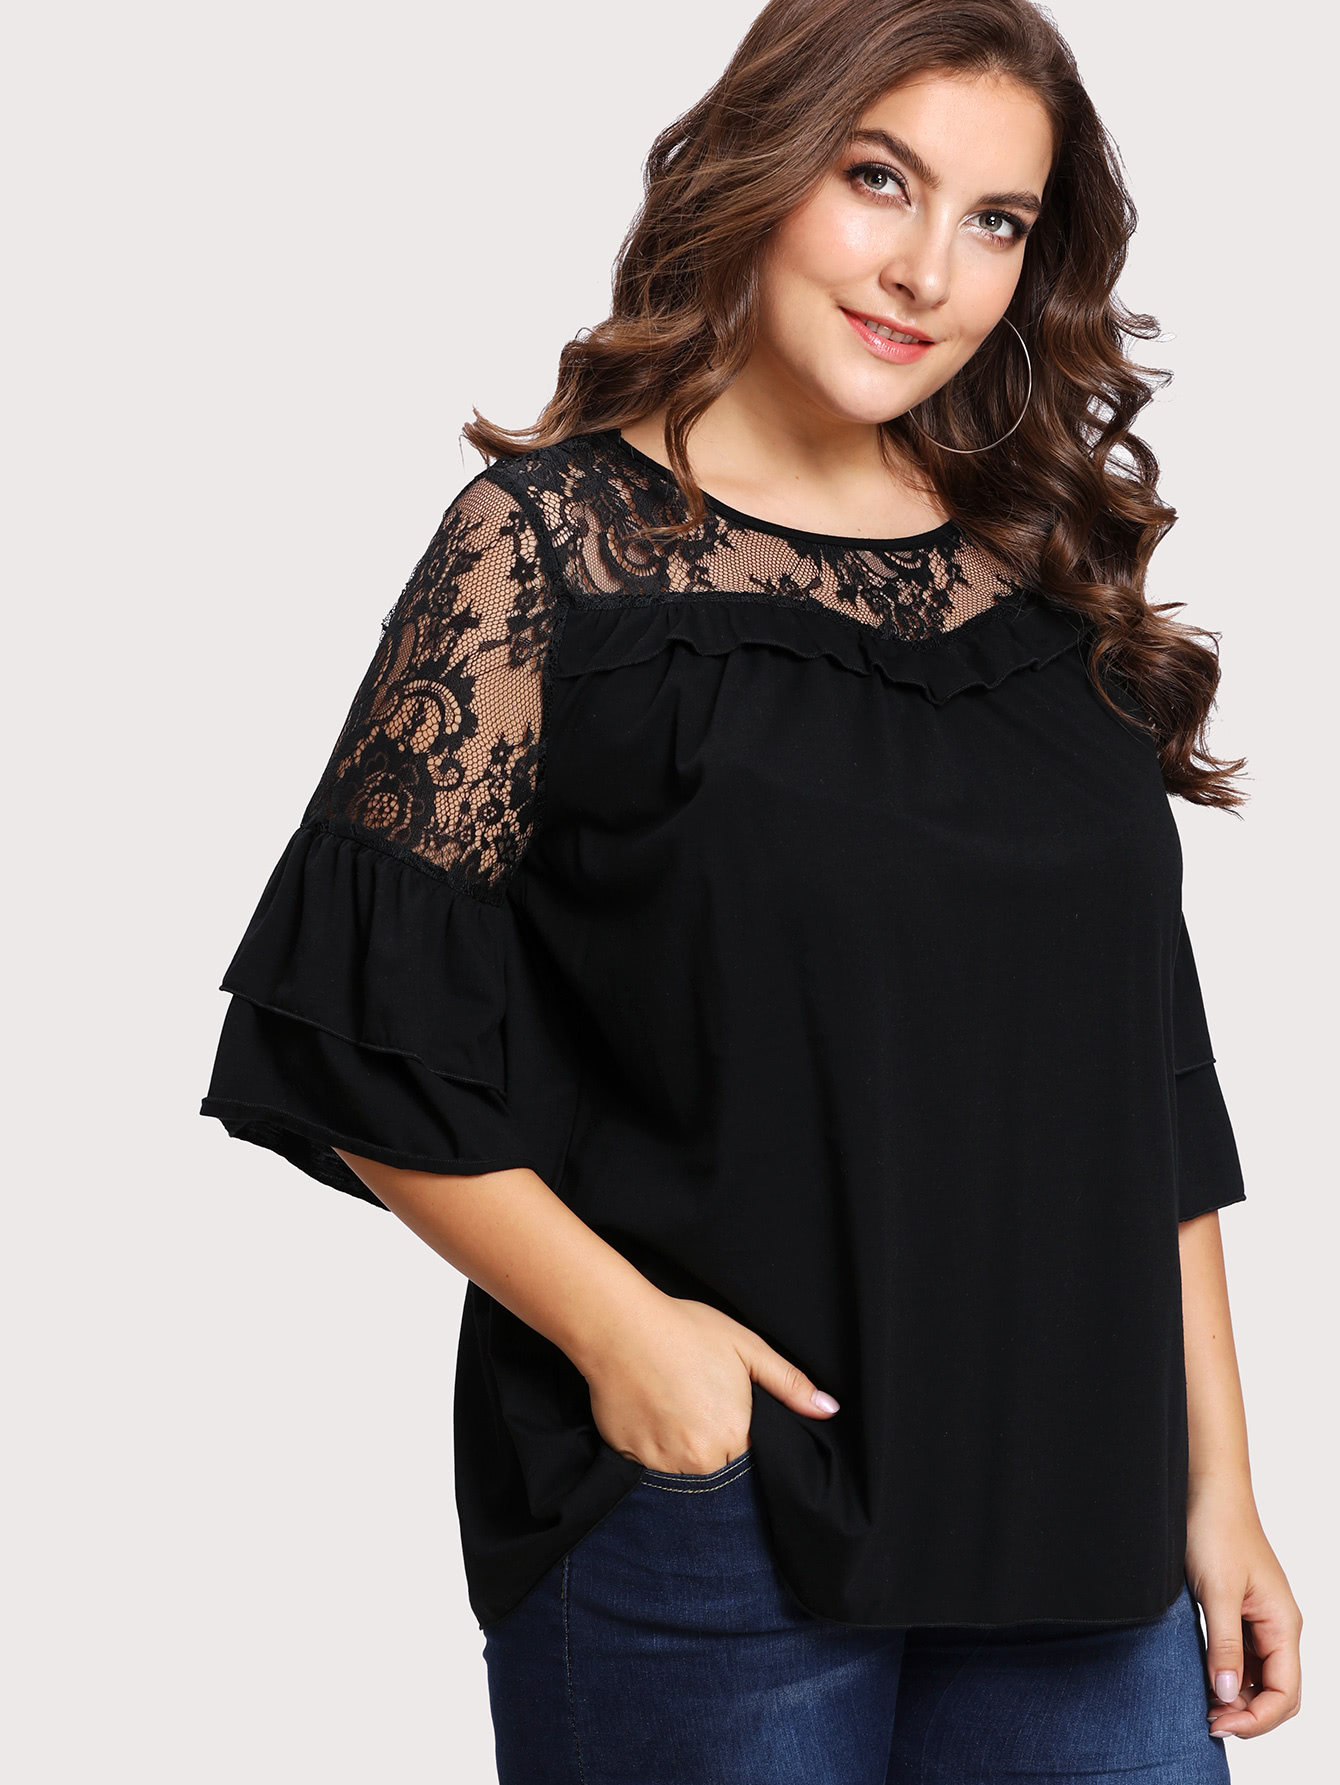 Floral Lace Yoke Solid Tee lace panel yoke tee